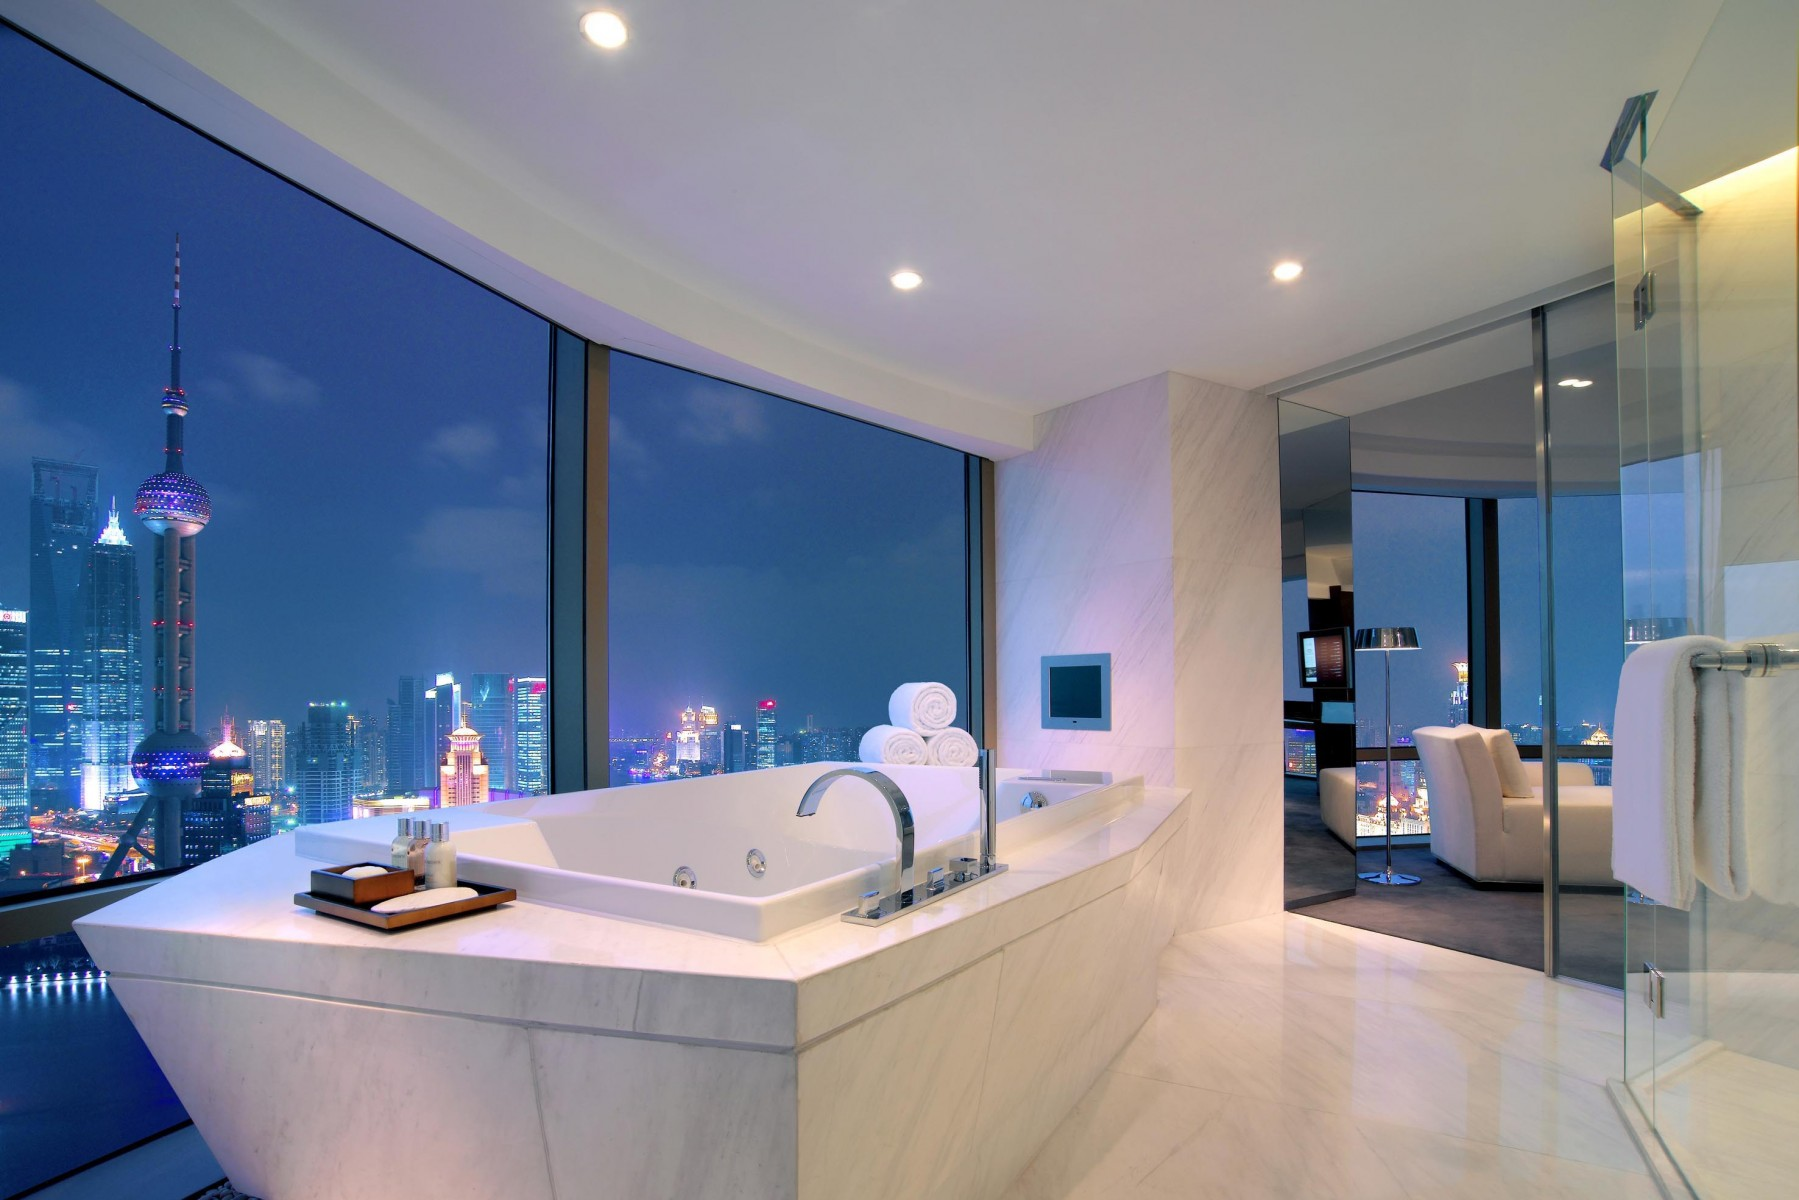 Soak up the view 8 beautiful bathrooms you wont be able to resist